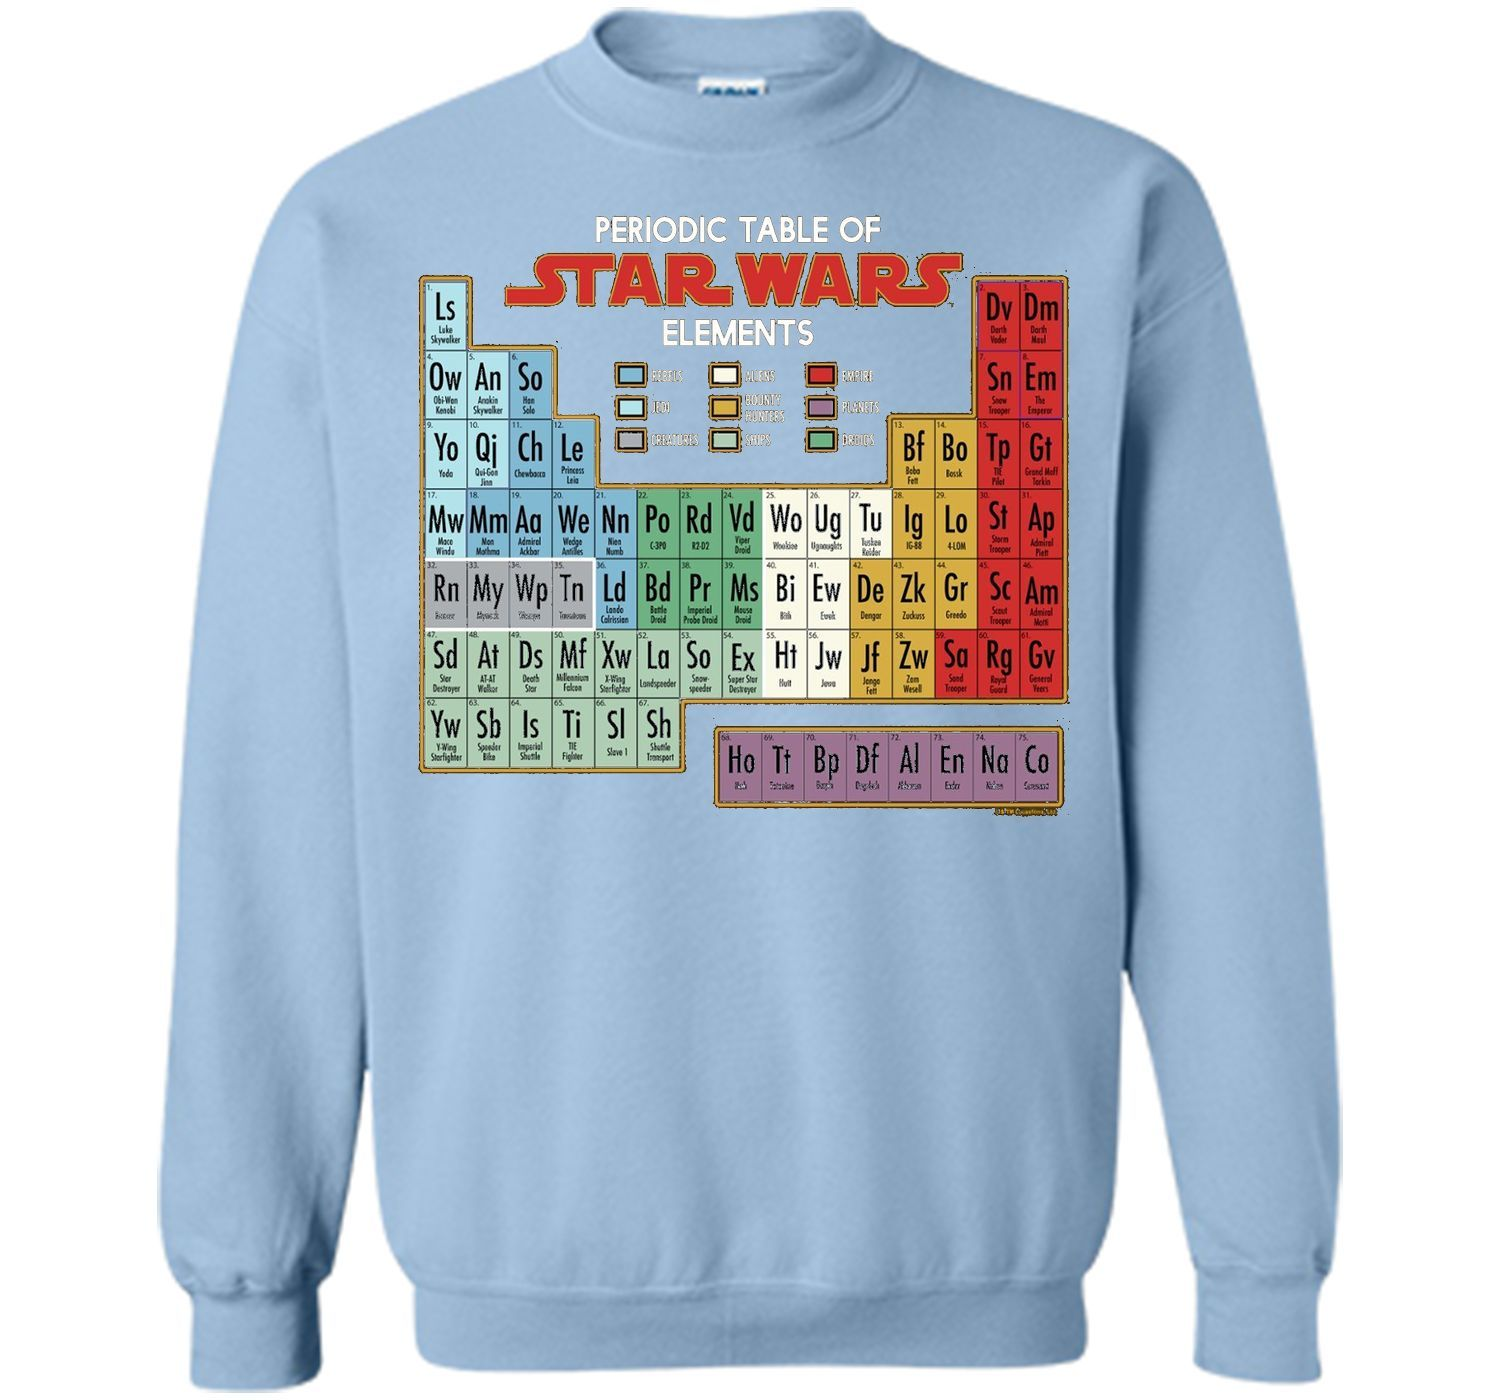 Star wars periodic table of elements graphic t shirt products star wars periodic table of elements graphic t shirt urtaz Choice Image